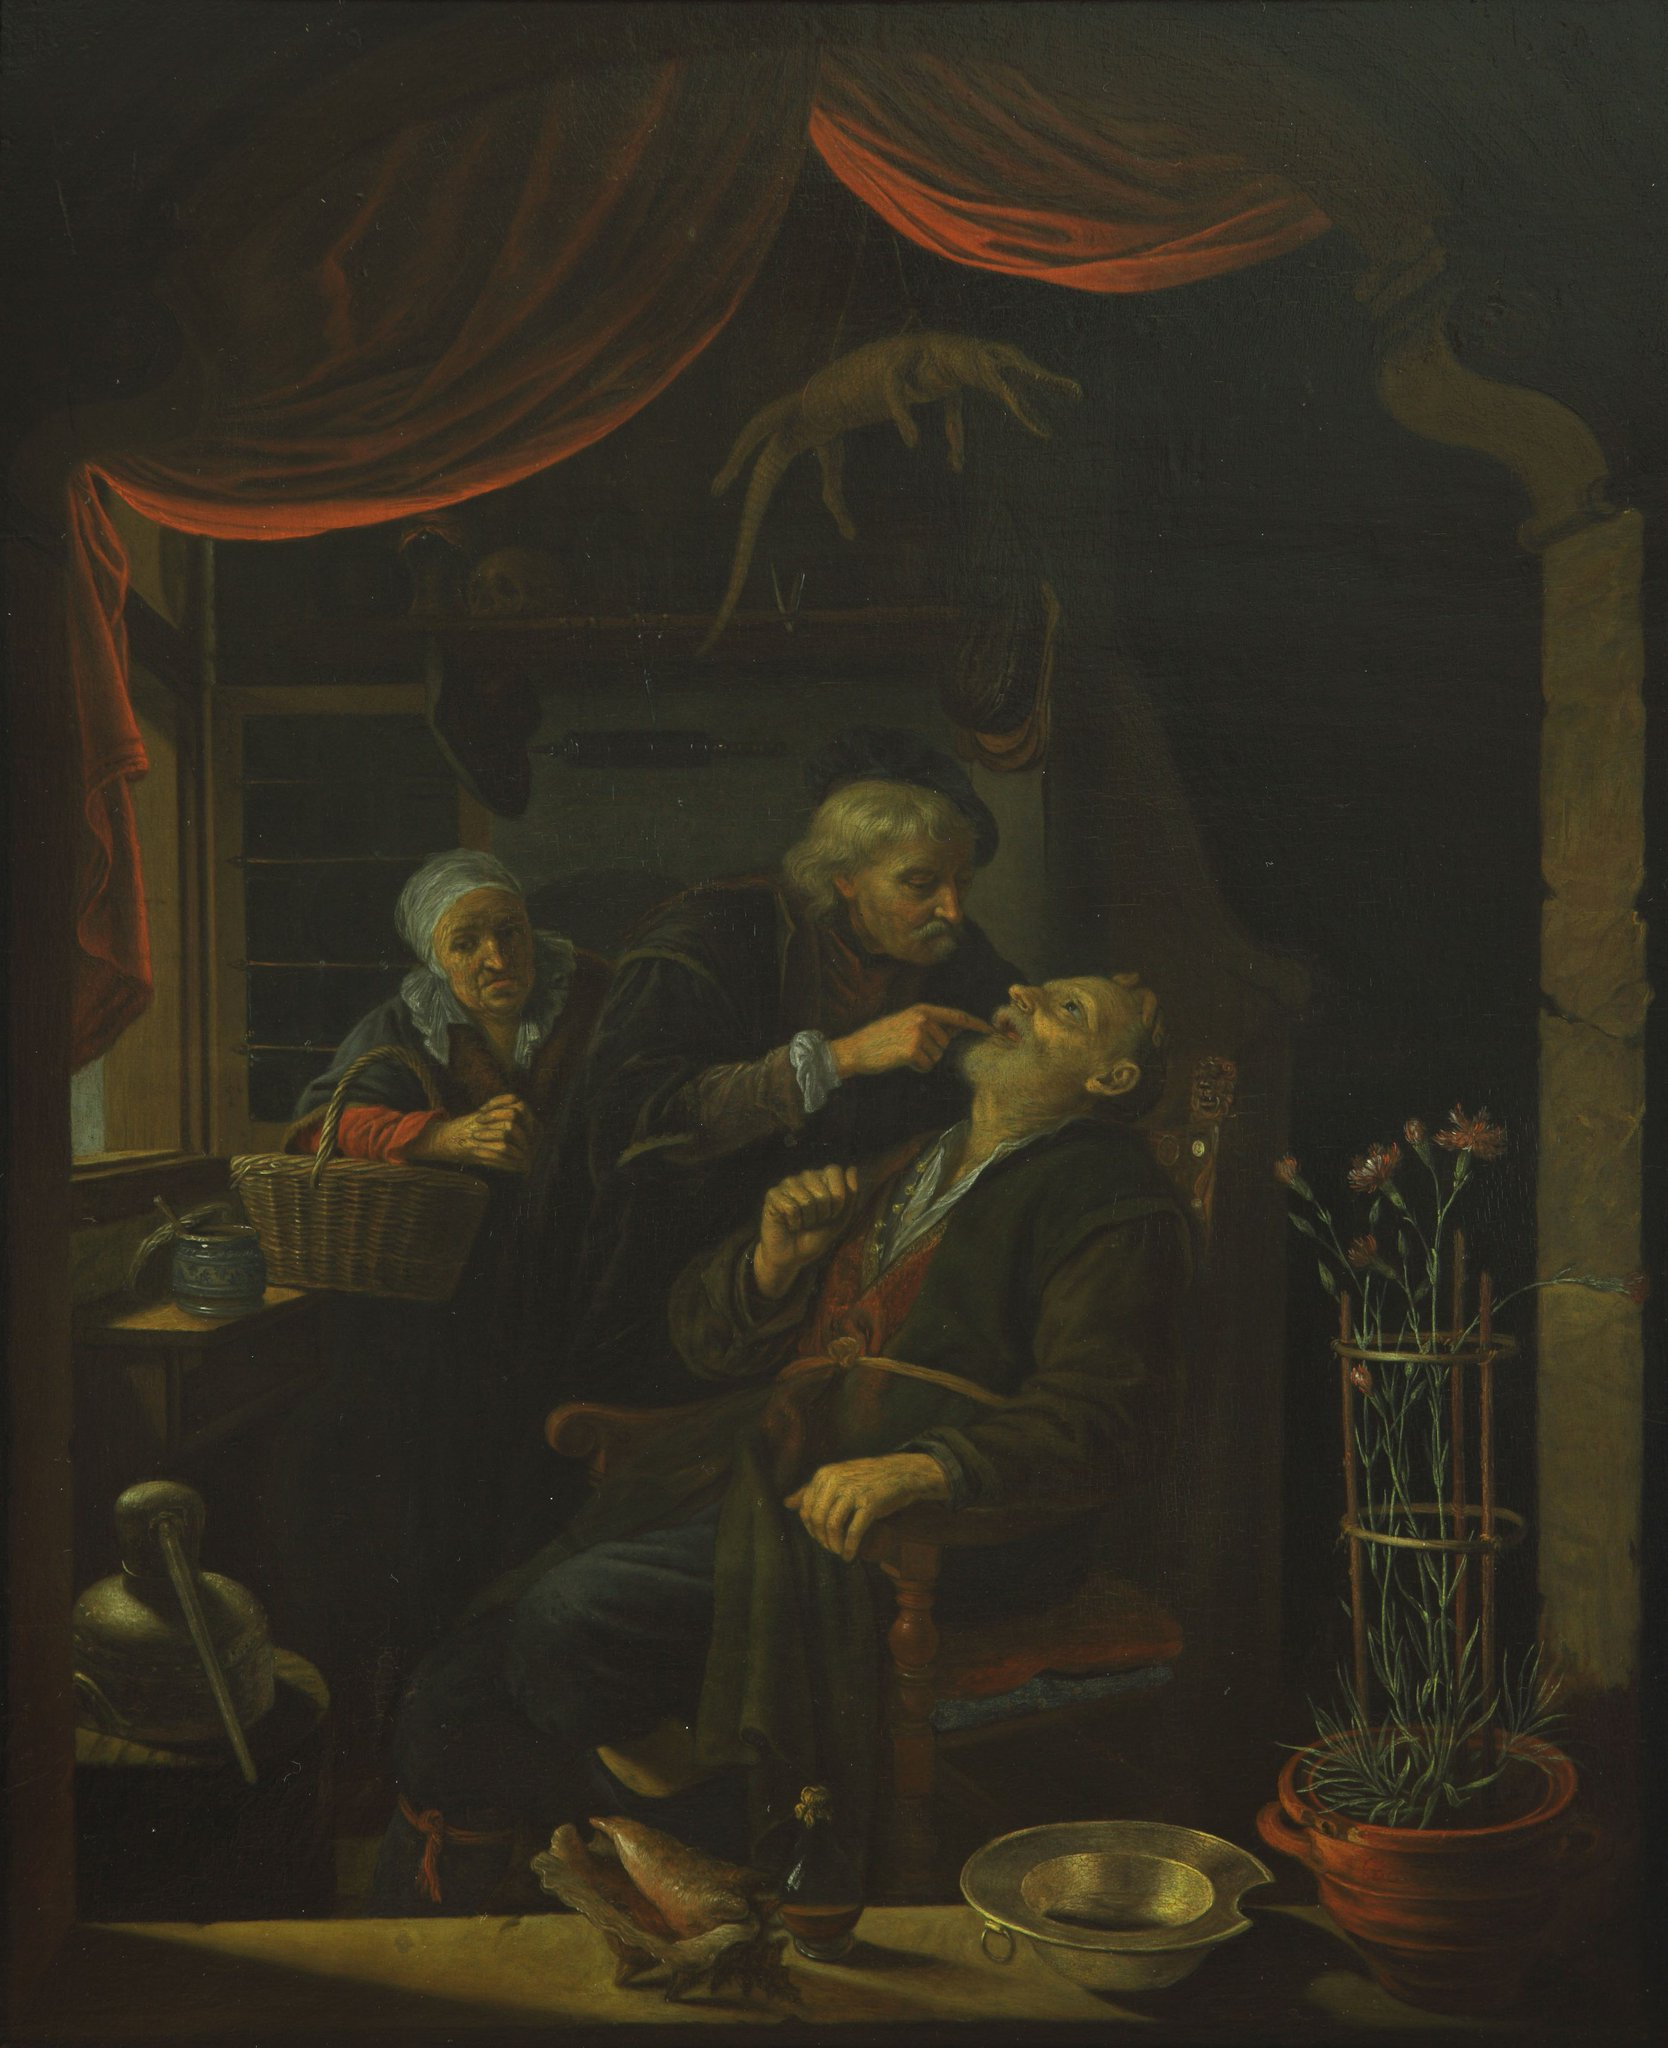 In images of early modern doctors, dentists, & surgeons, women often provide support for family members #MuseumMonday #WomensHistoryMonth https://t.co/XLsFmVNwRi